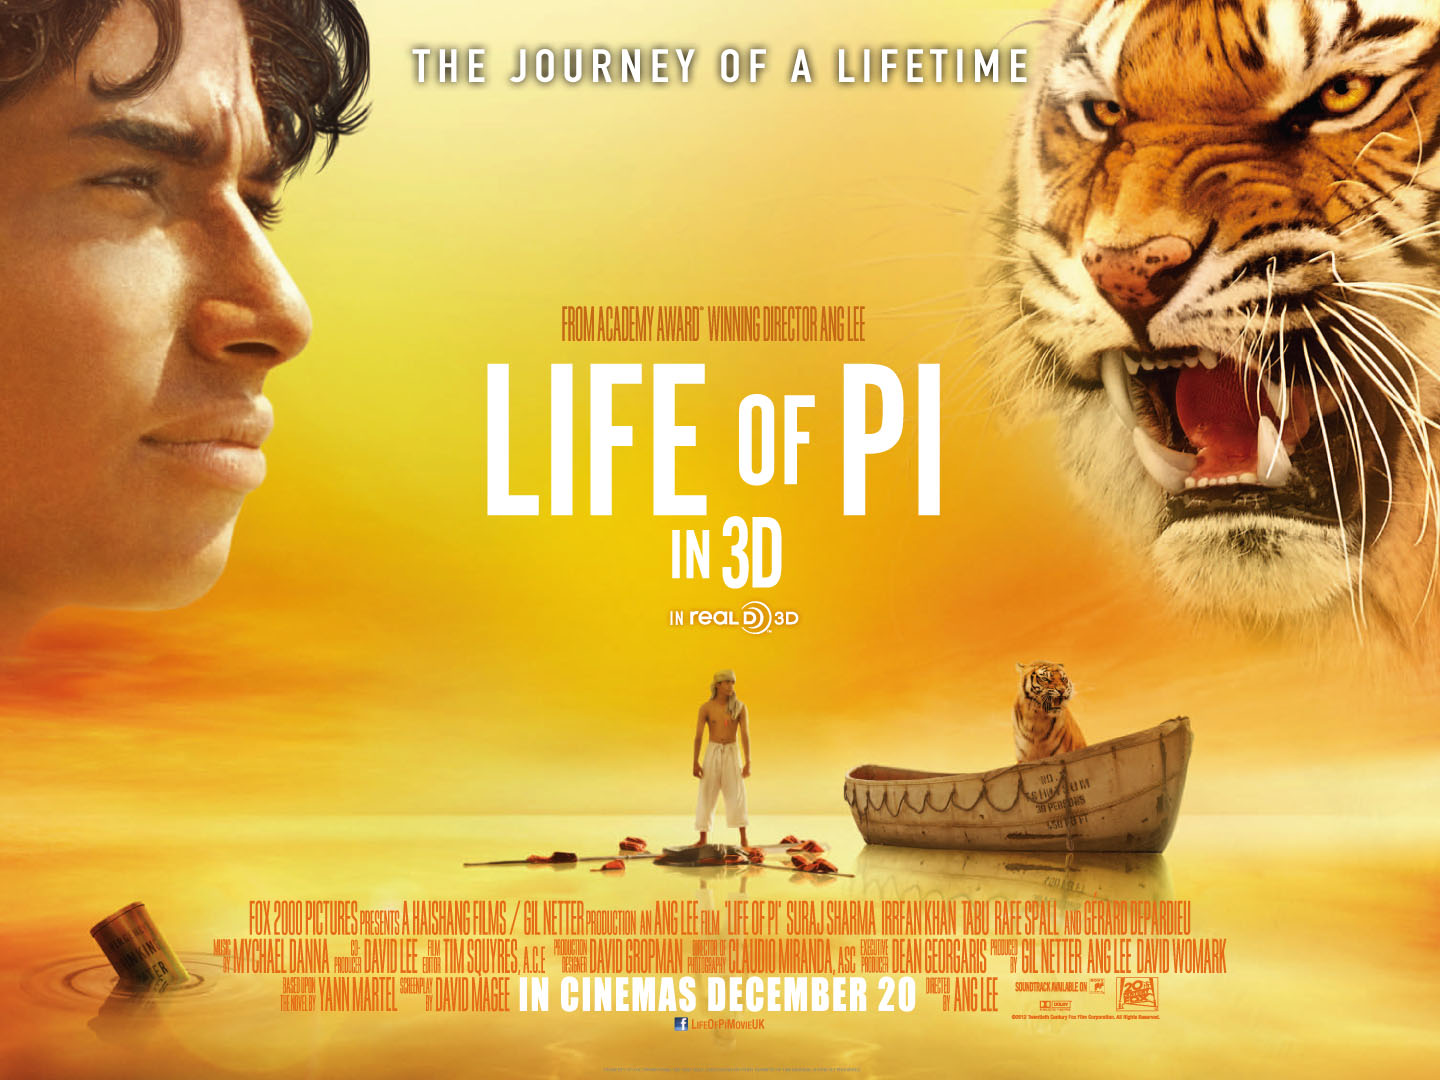 Movies life of pi swadeology for Life of pi swimming pool